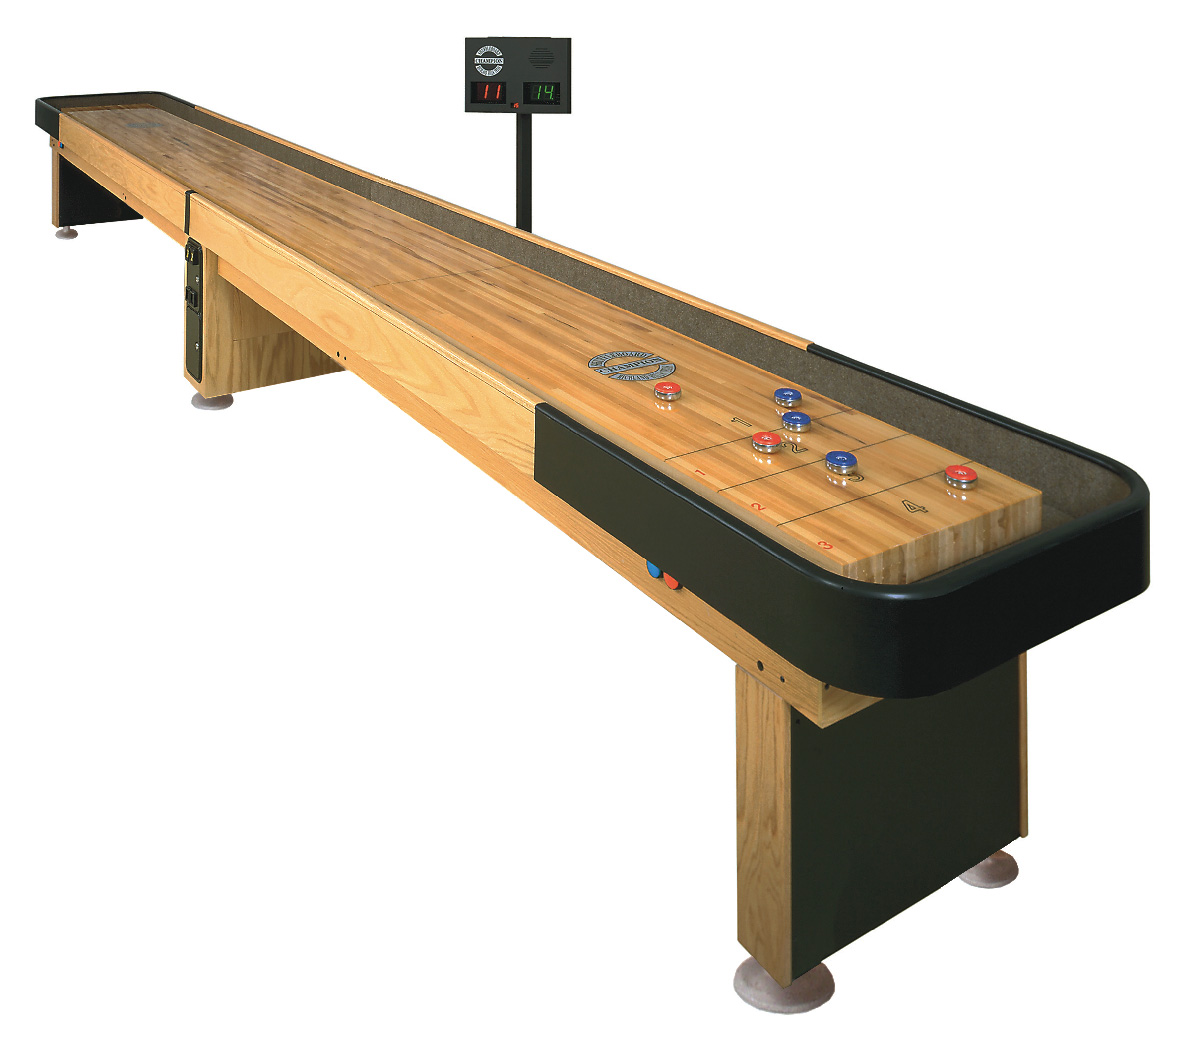 Foot Champion Championship Line Shuffleboard Table - Standard shuffleboard table